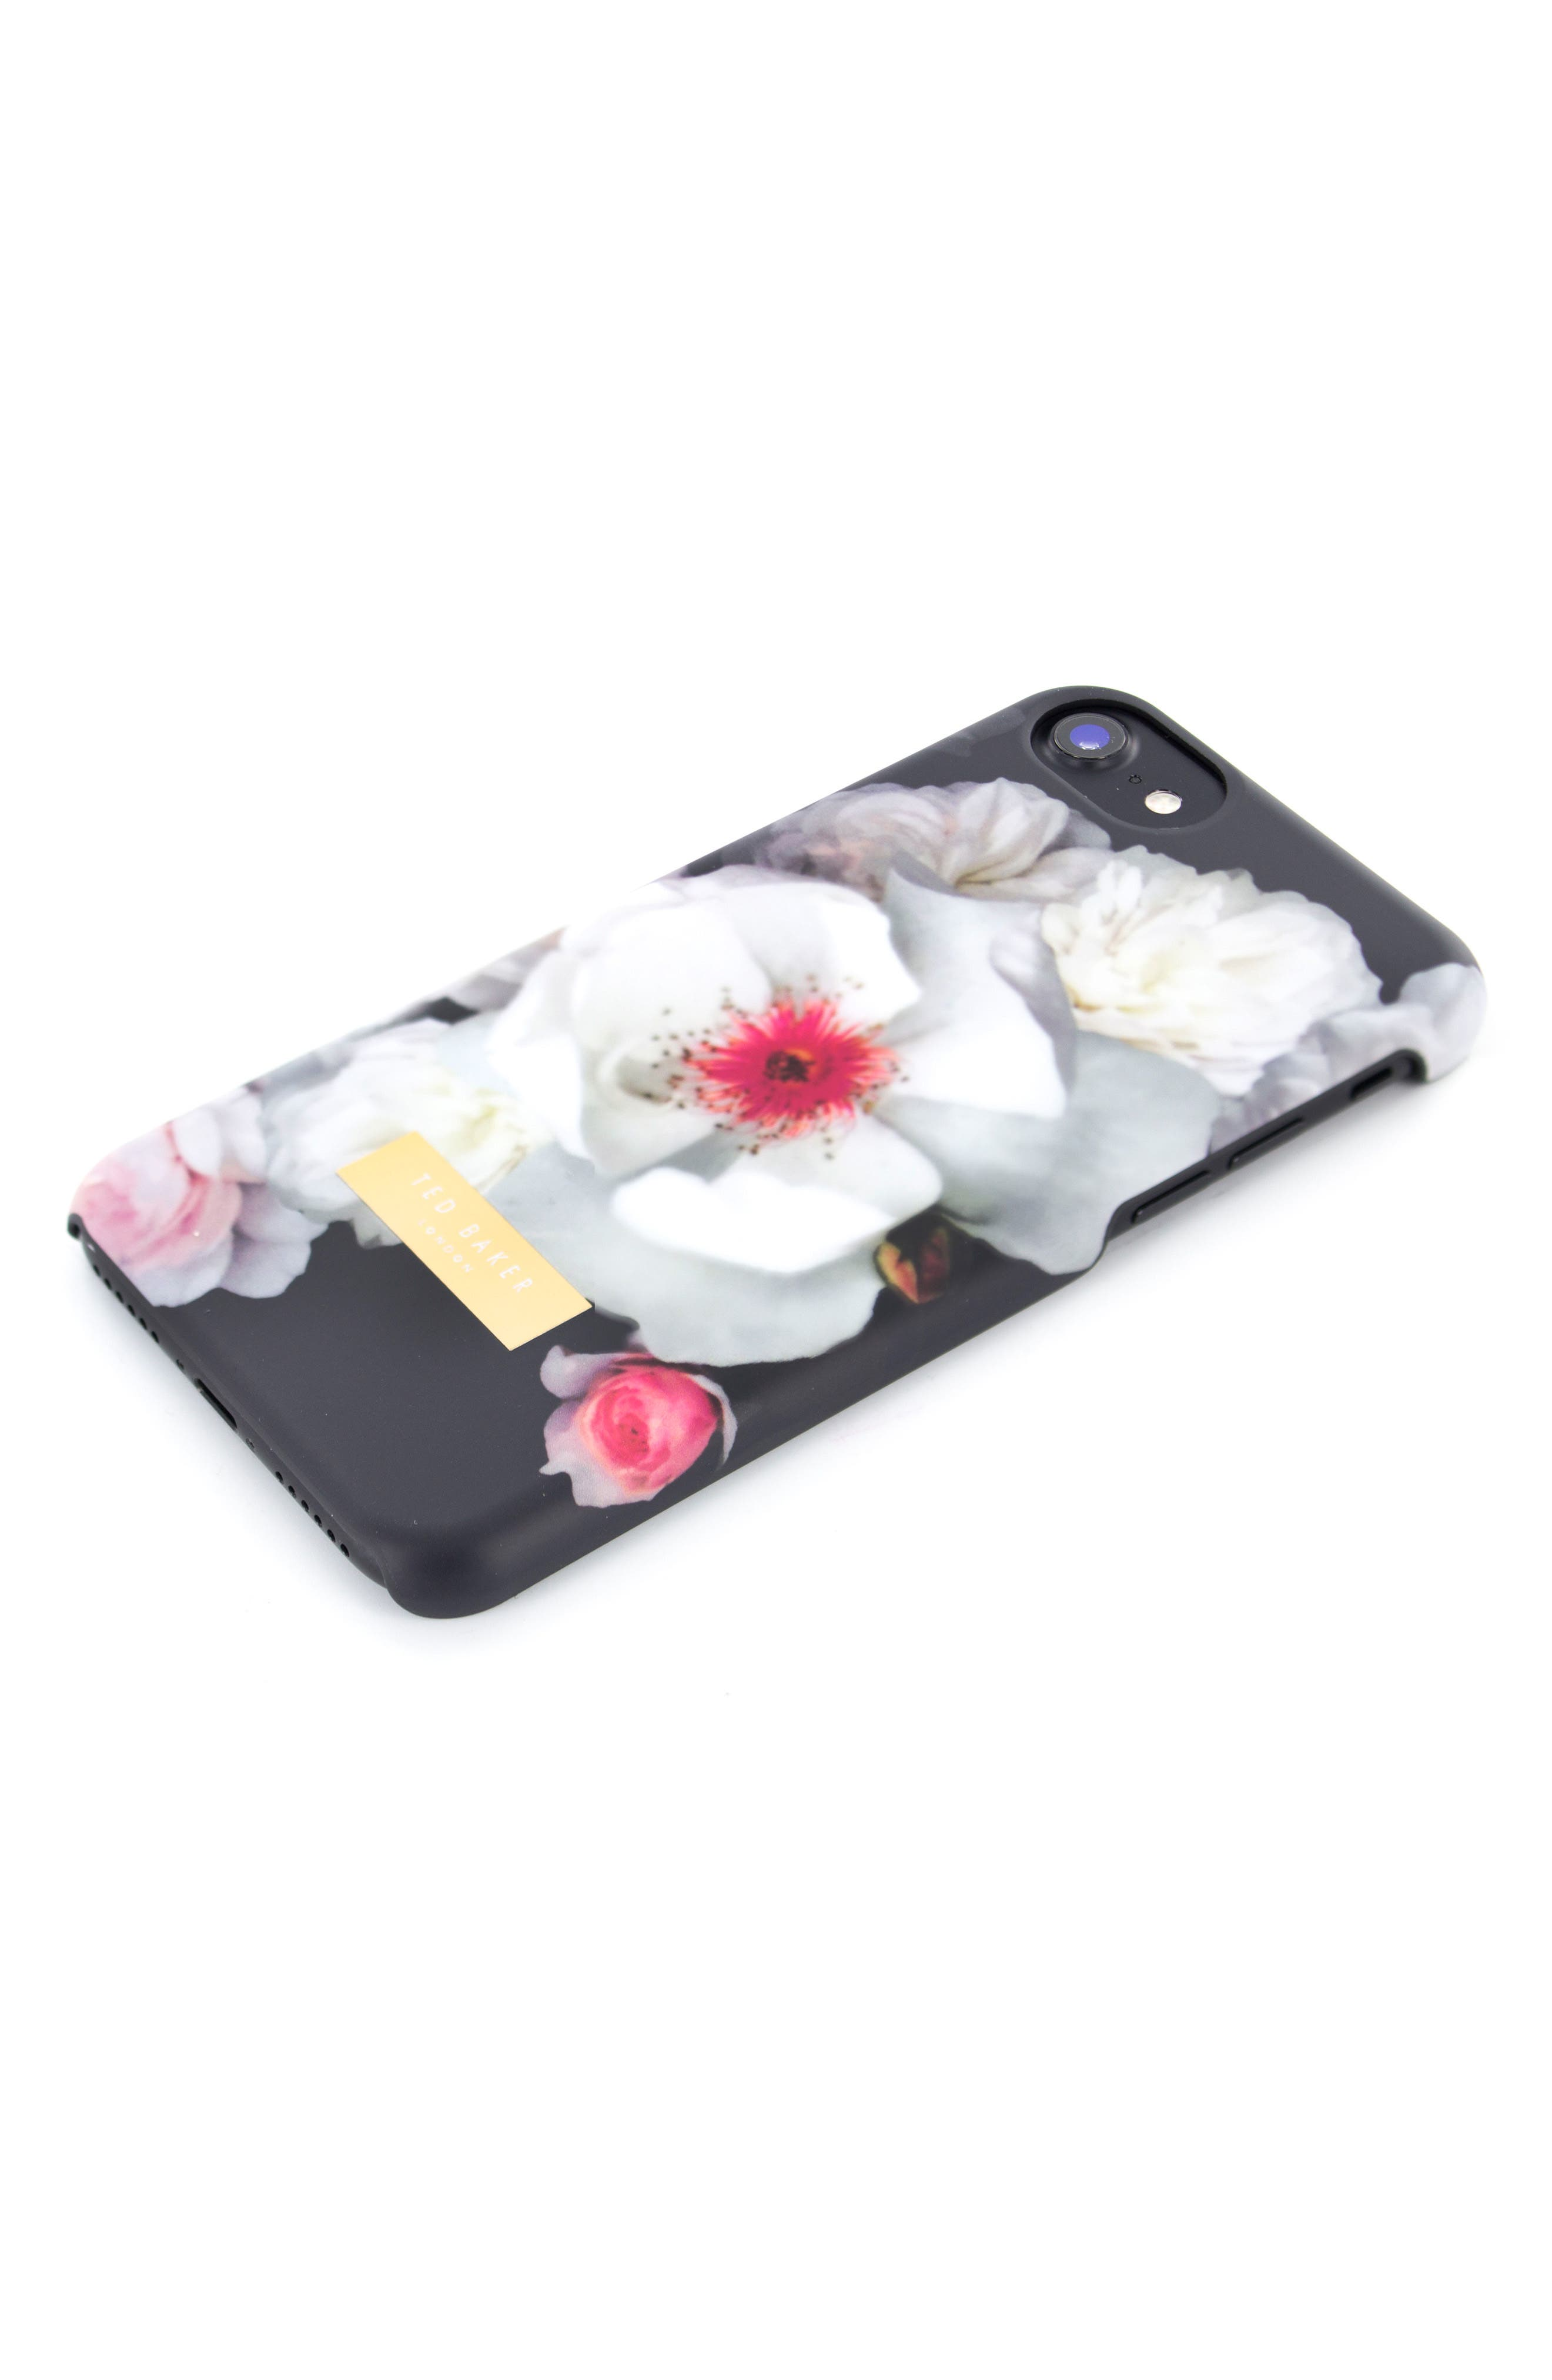 Main Image - Ted Baker London iPhone 6/6s/7/8 & 6/6s/7/8 Plus Case